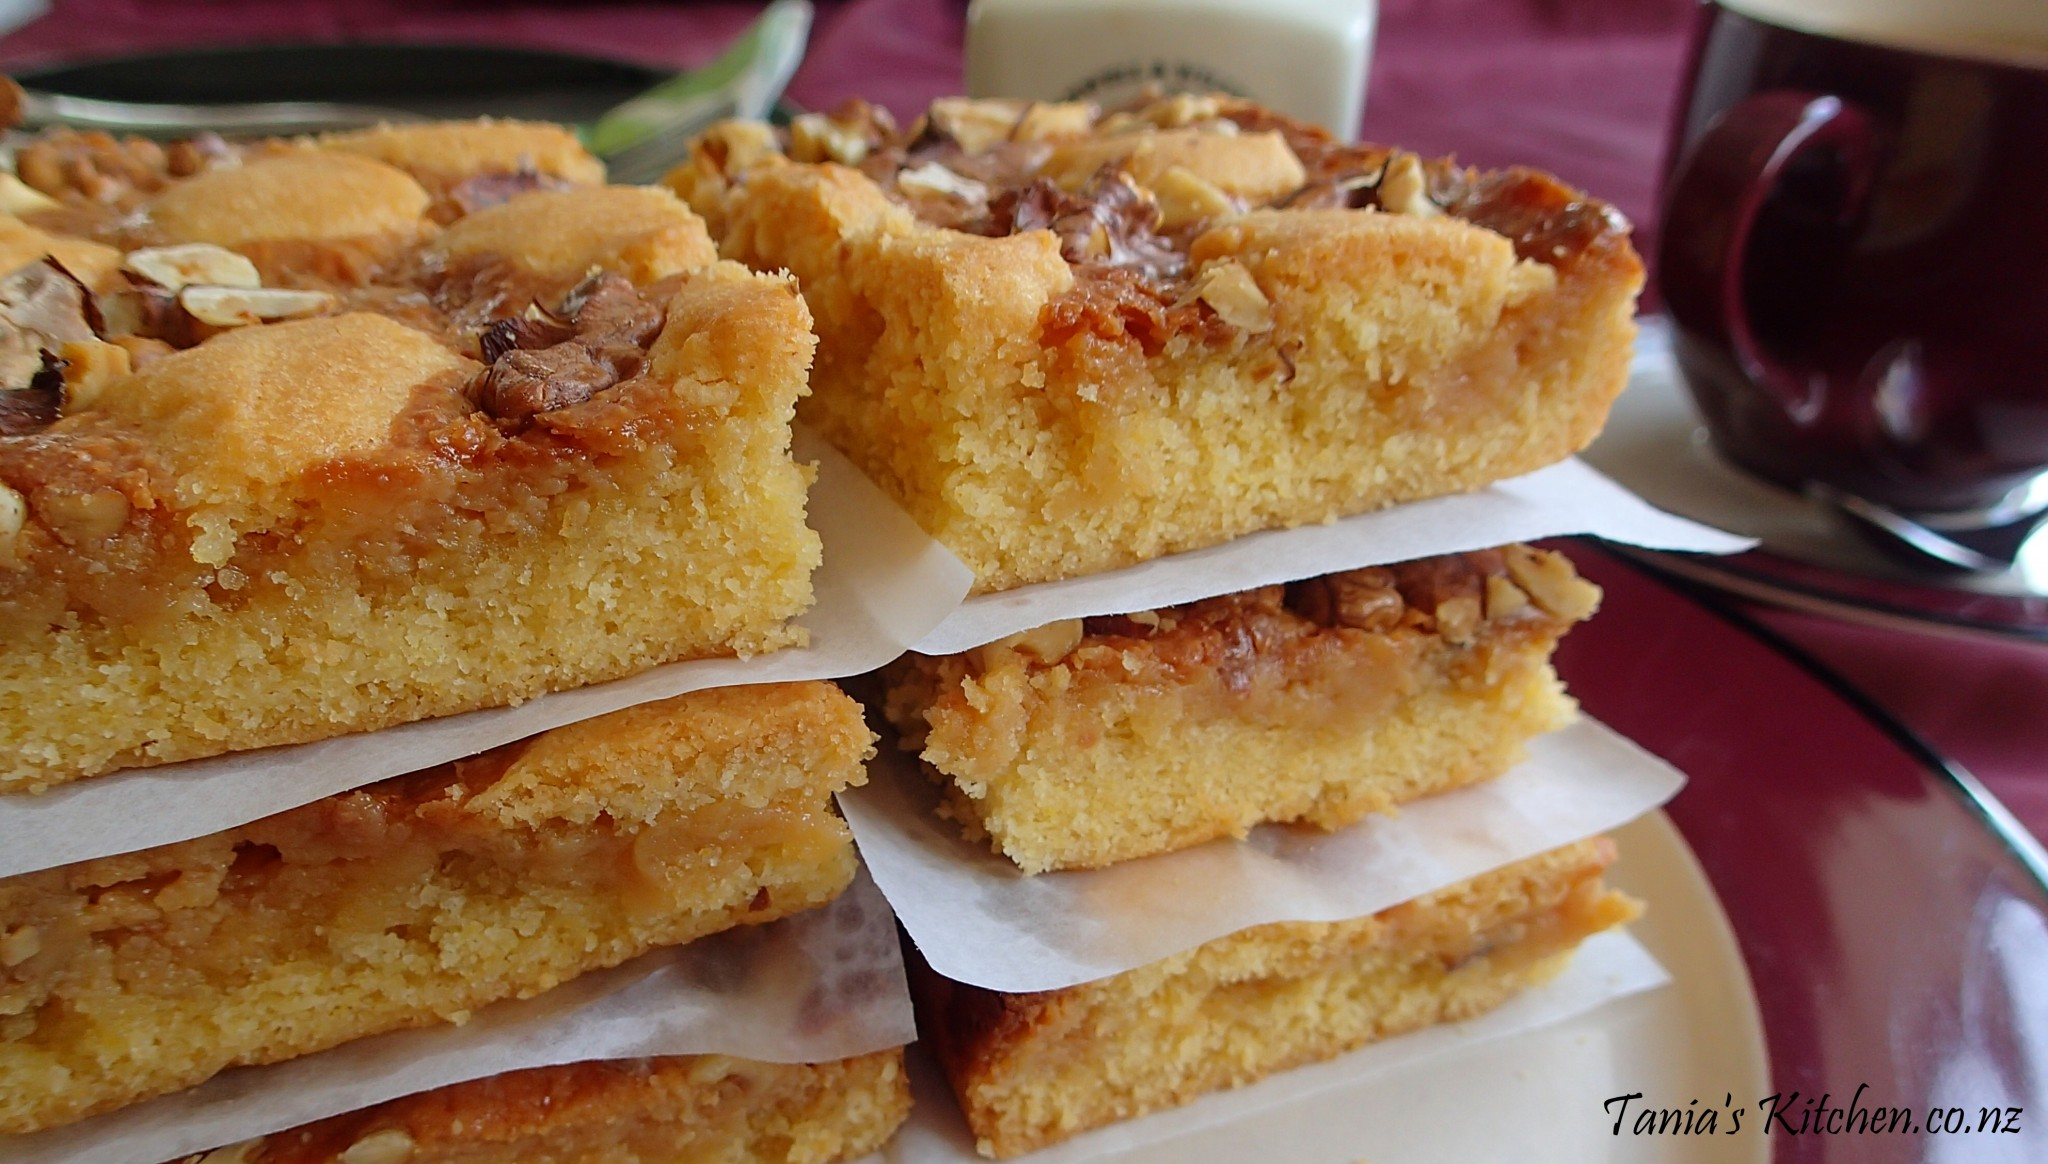 ... with gooey caramel and topped with crispy, golden, toasted walnuts